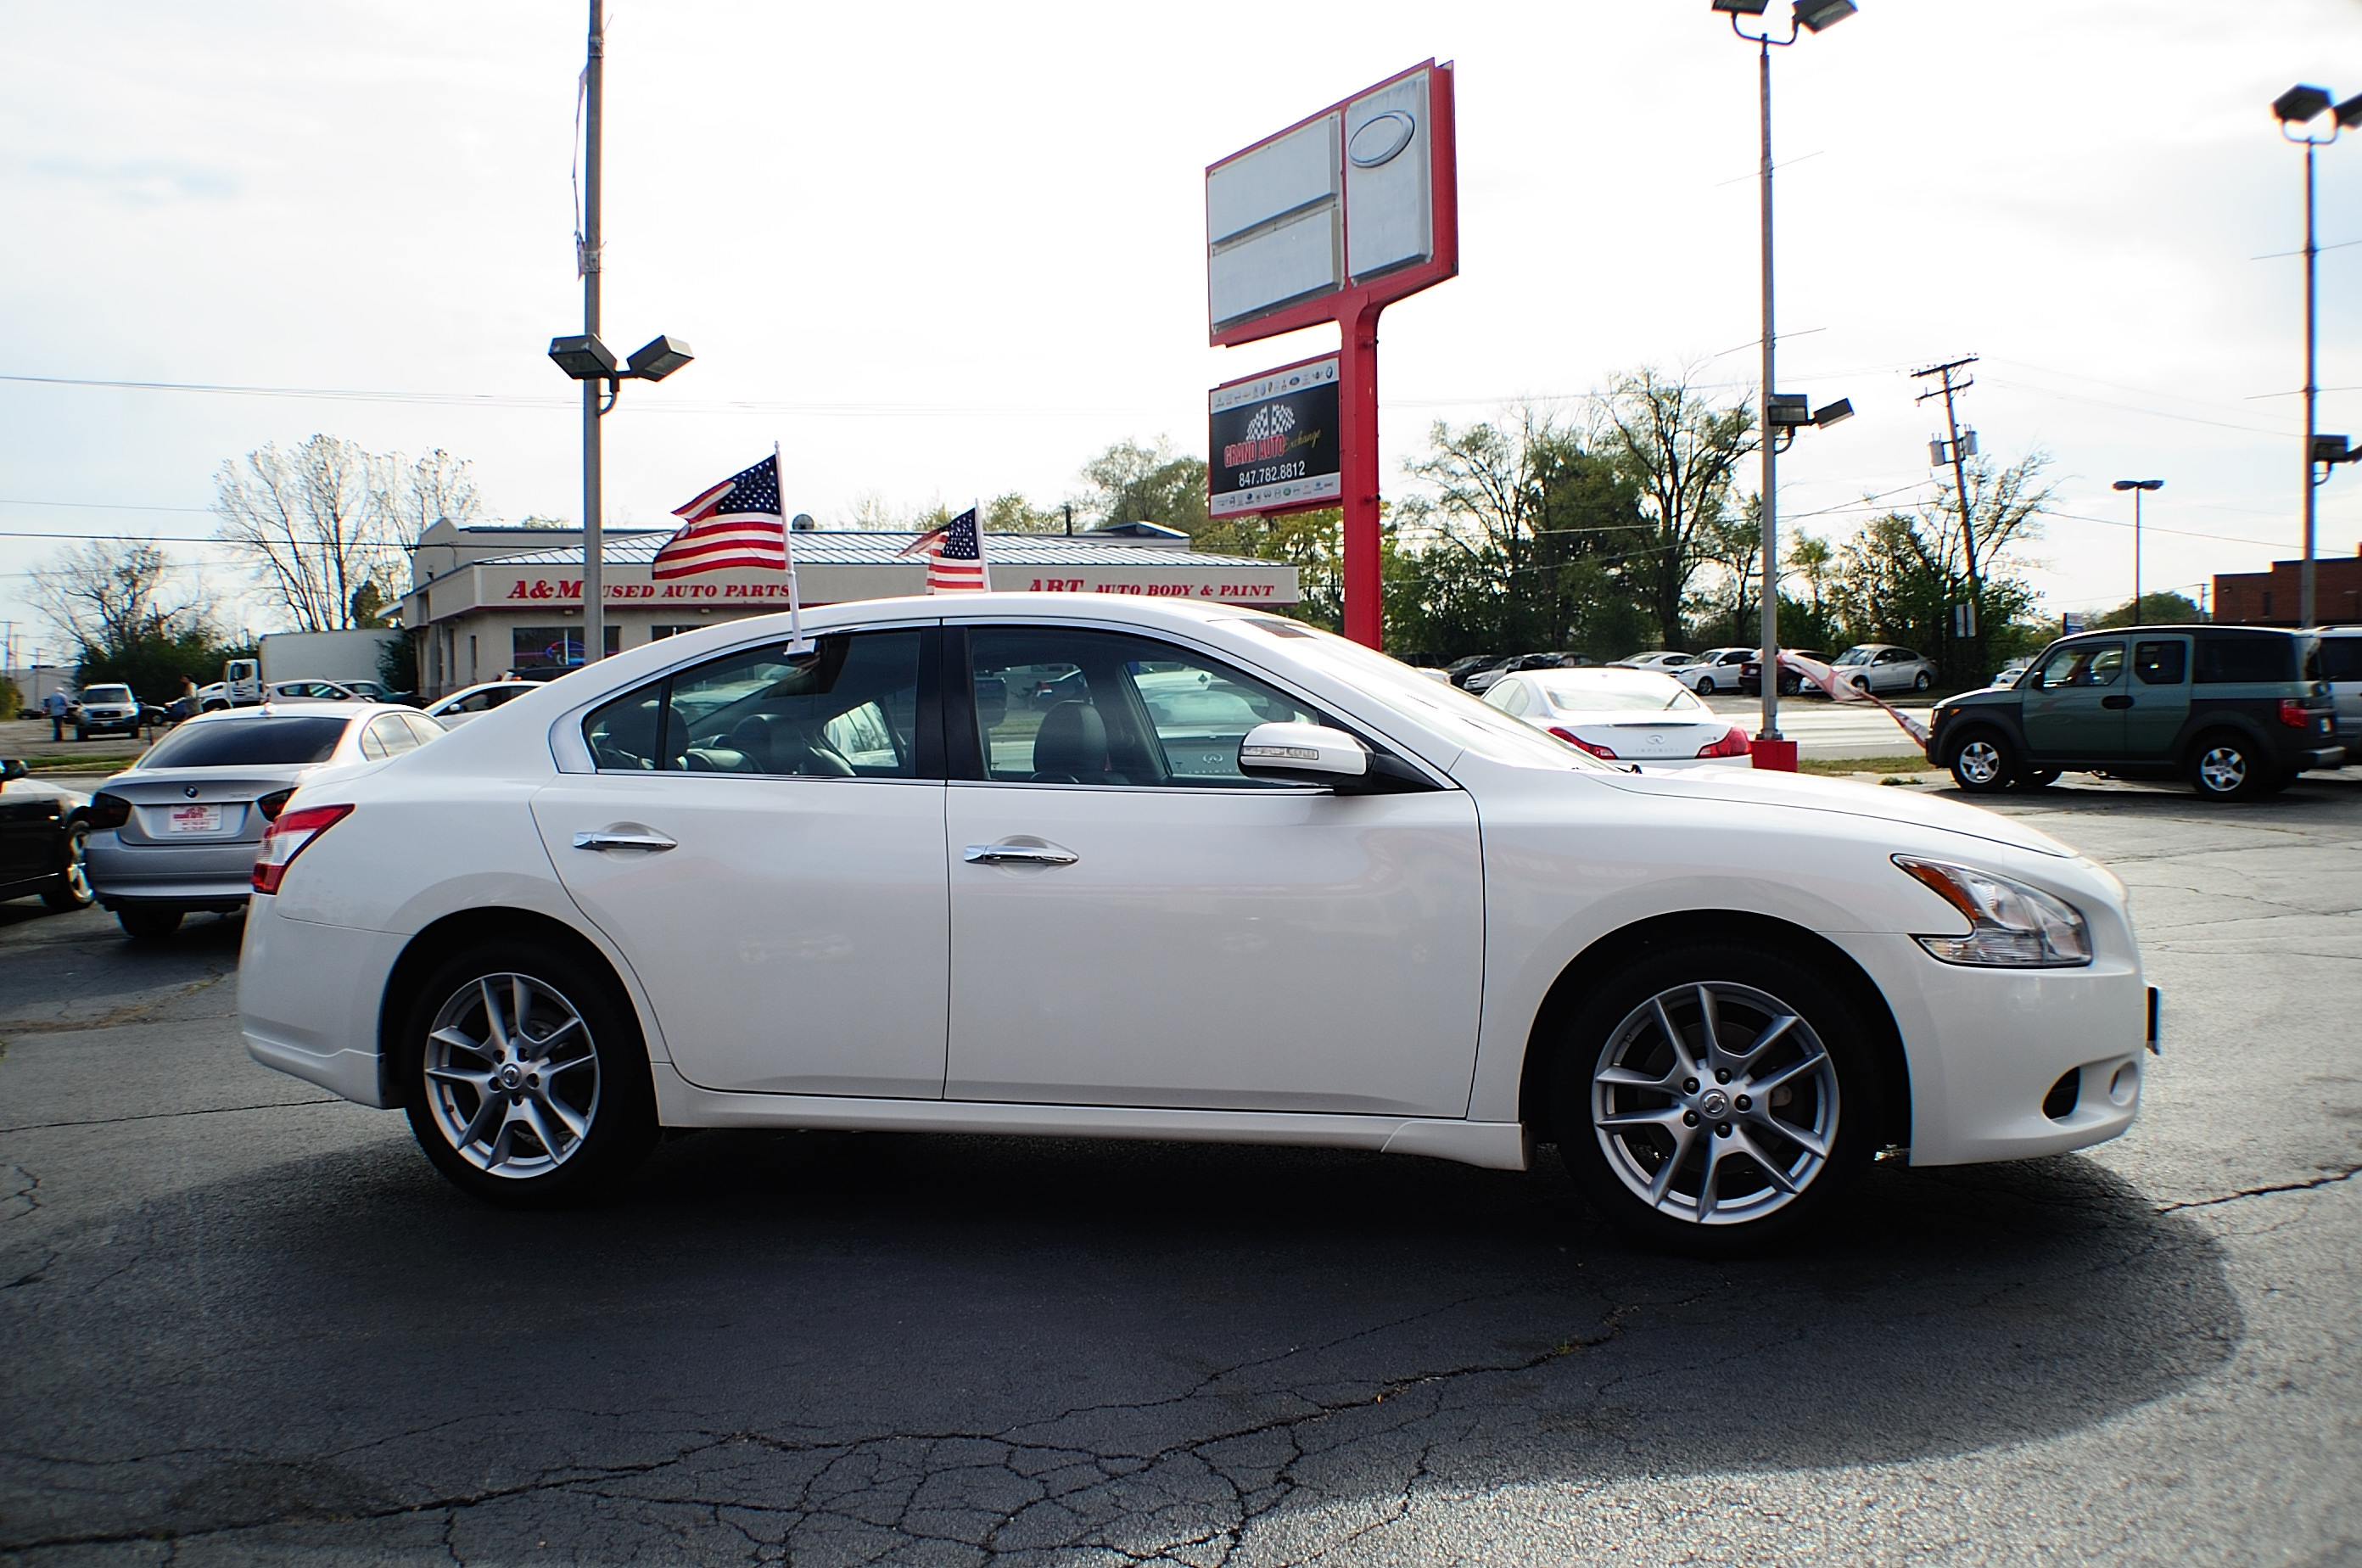 2009 Nissan Maxima White Navigation Sedan Used Car Sale Bannockburn Barrington Beach Park